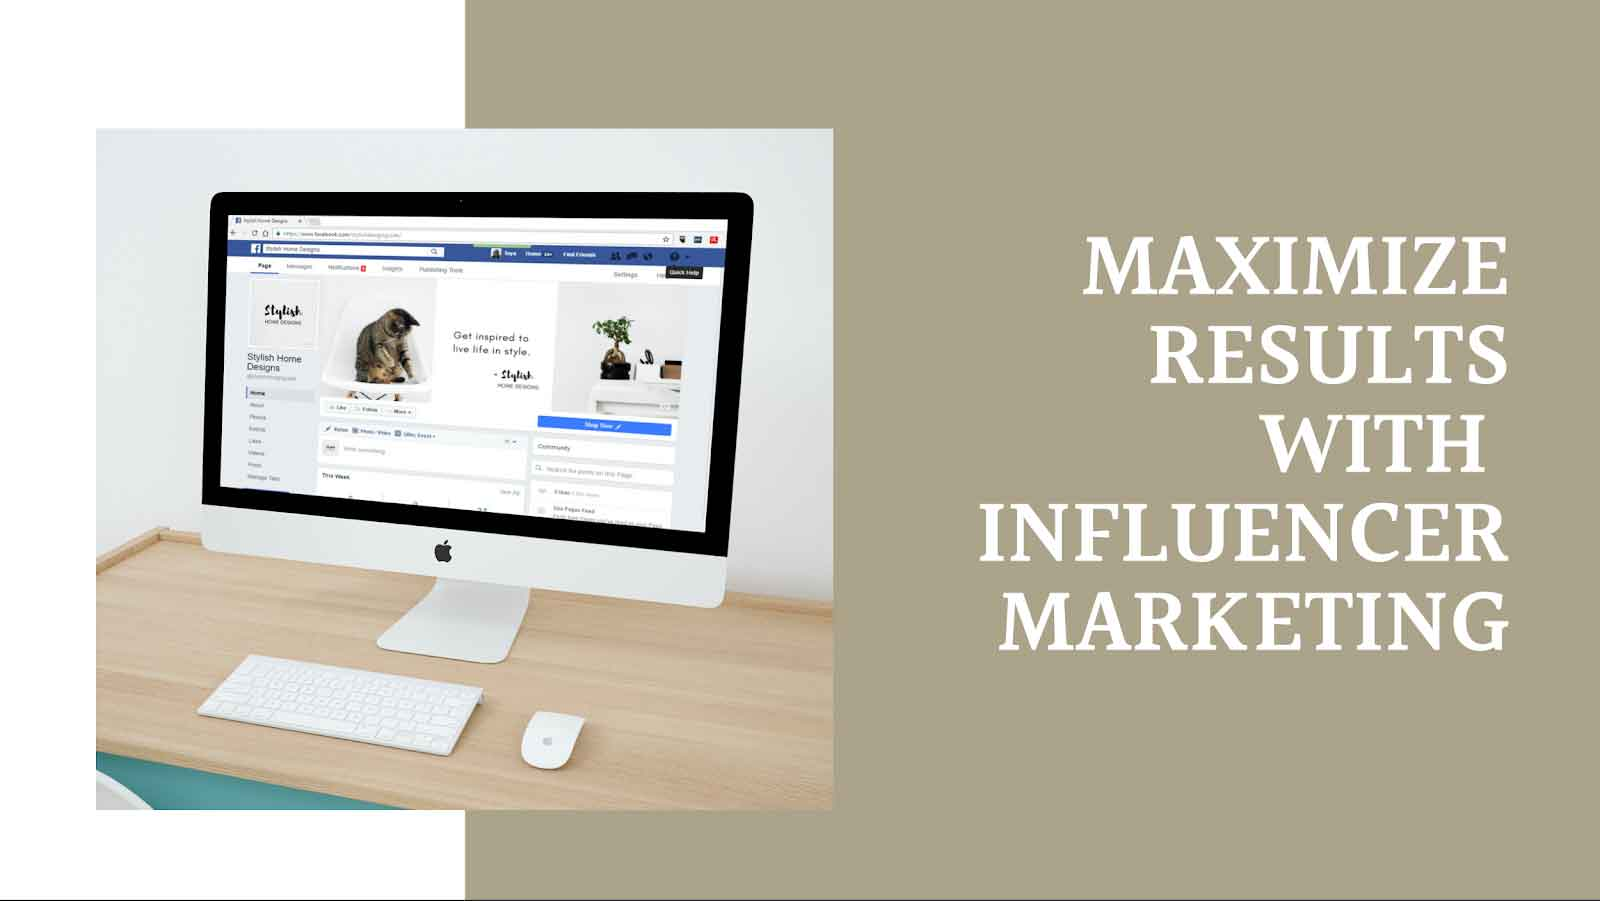 Maximize Results with Influencer Marketing